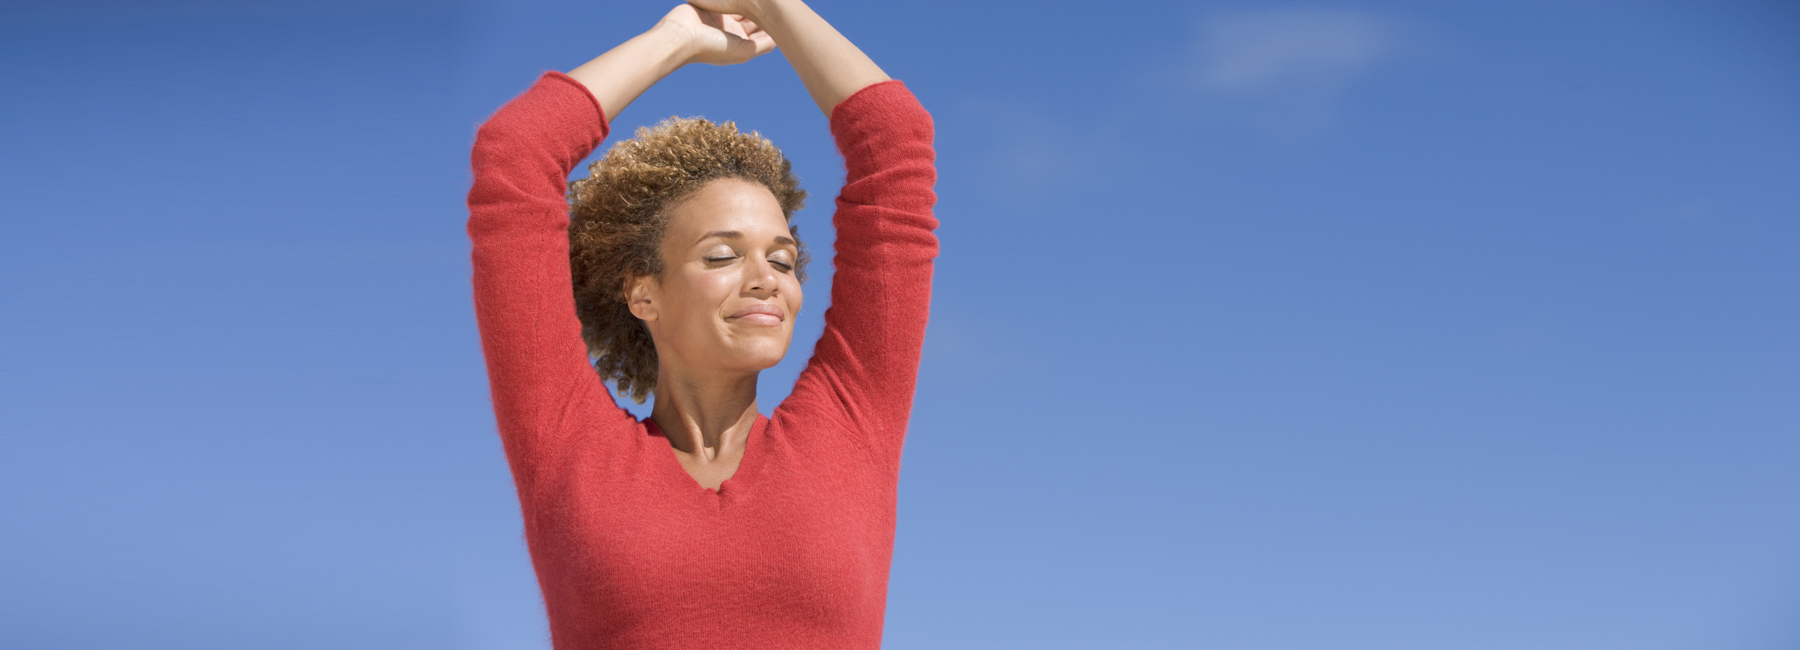 Migraine Relief Without Medication